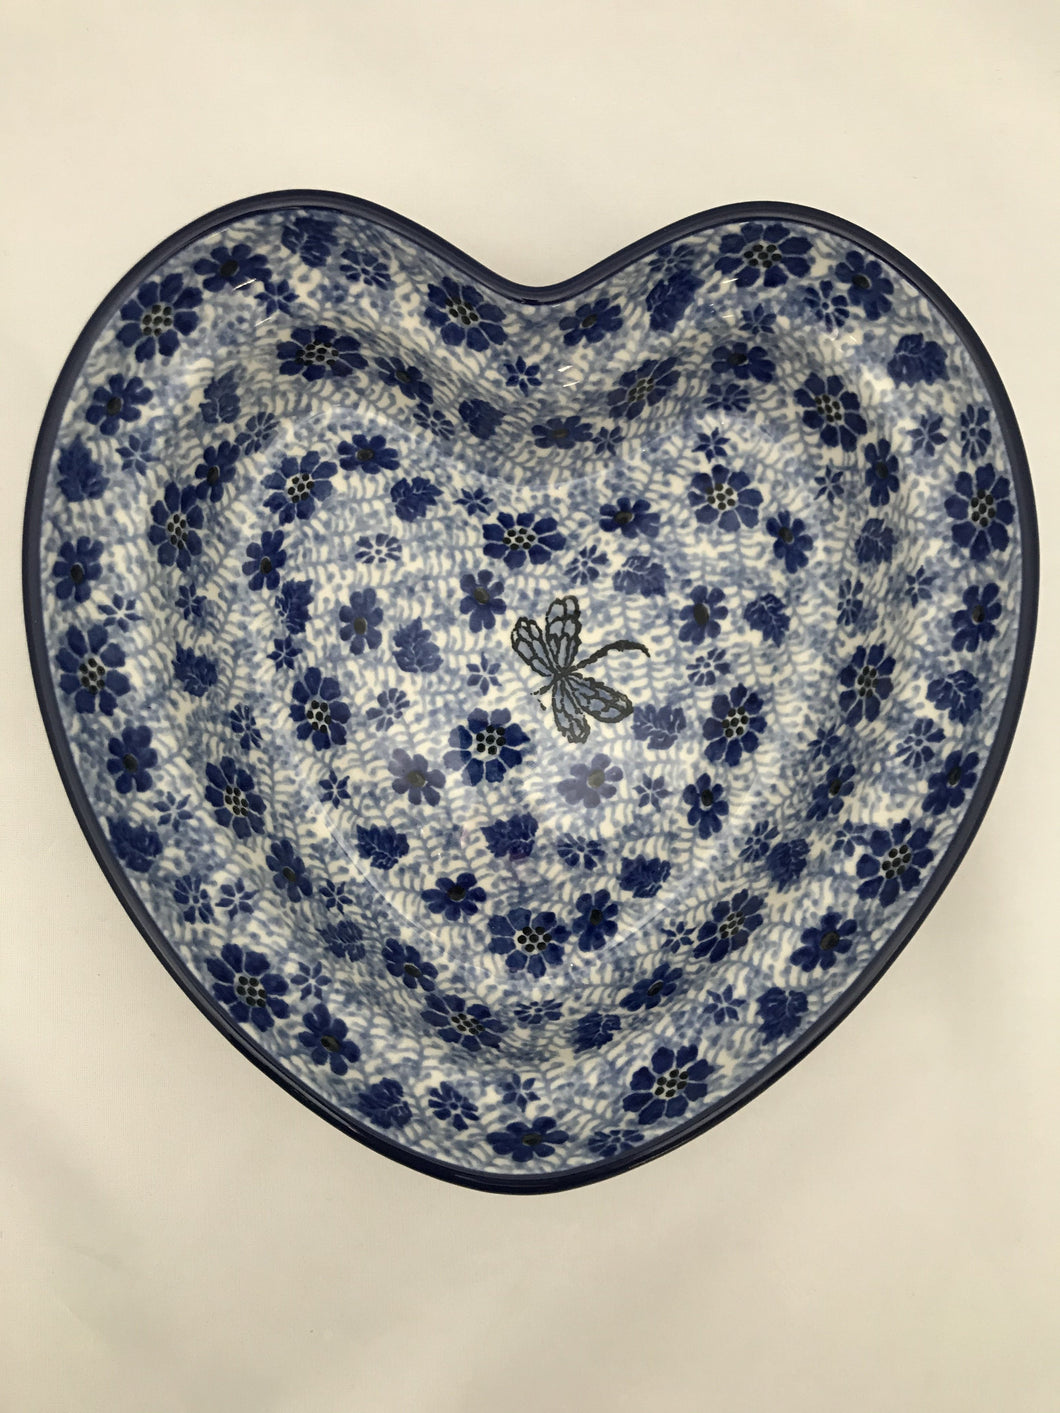 019 Heart Shaped Bowl - 1443 Hidden Dragonfly